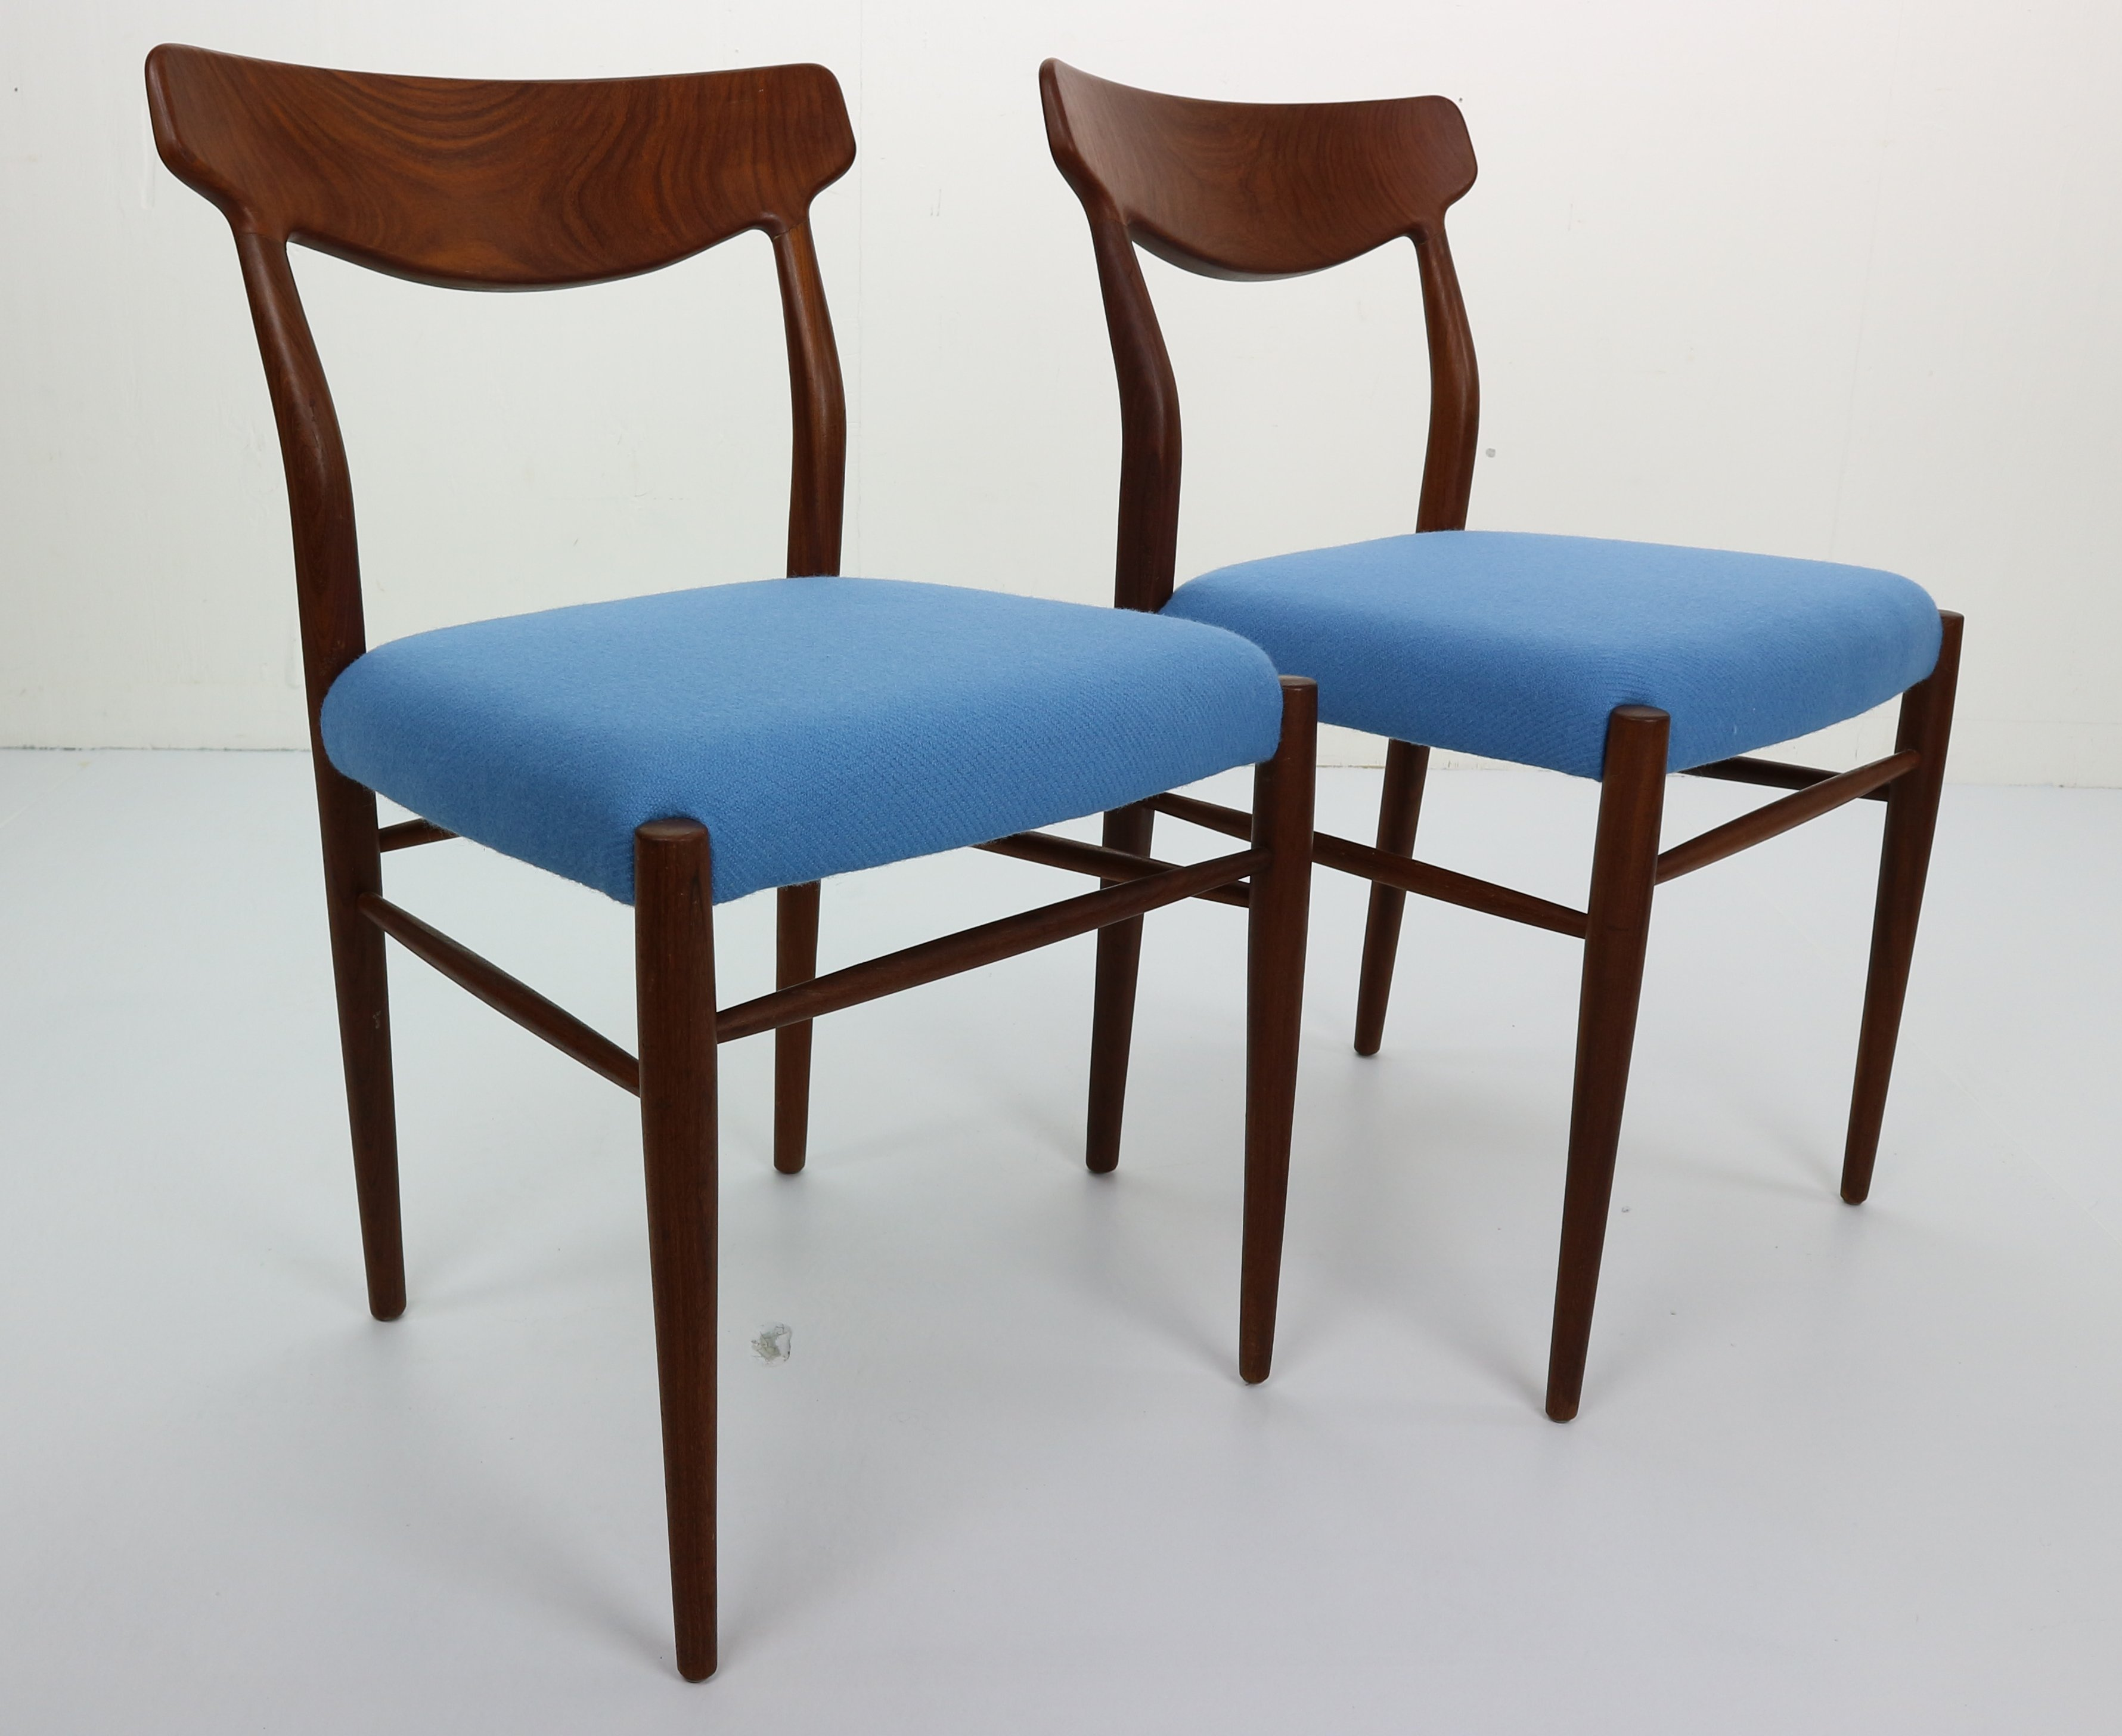 Set of 2 harry østergaard teak chairs denmark 1960s 96475